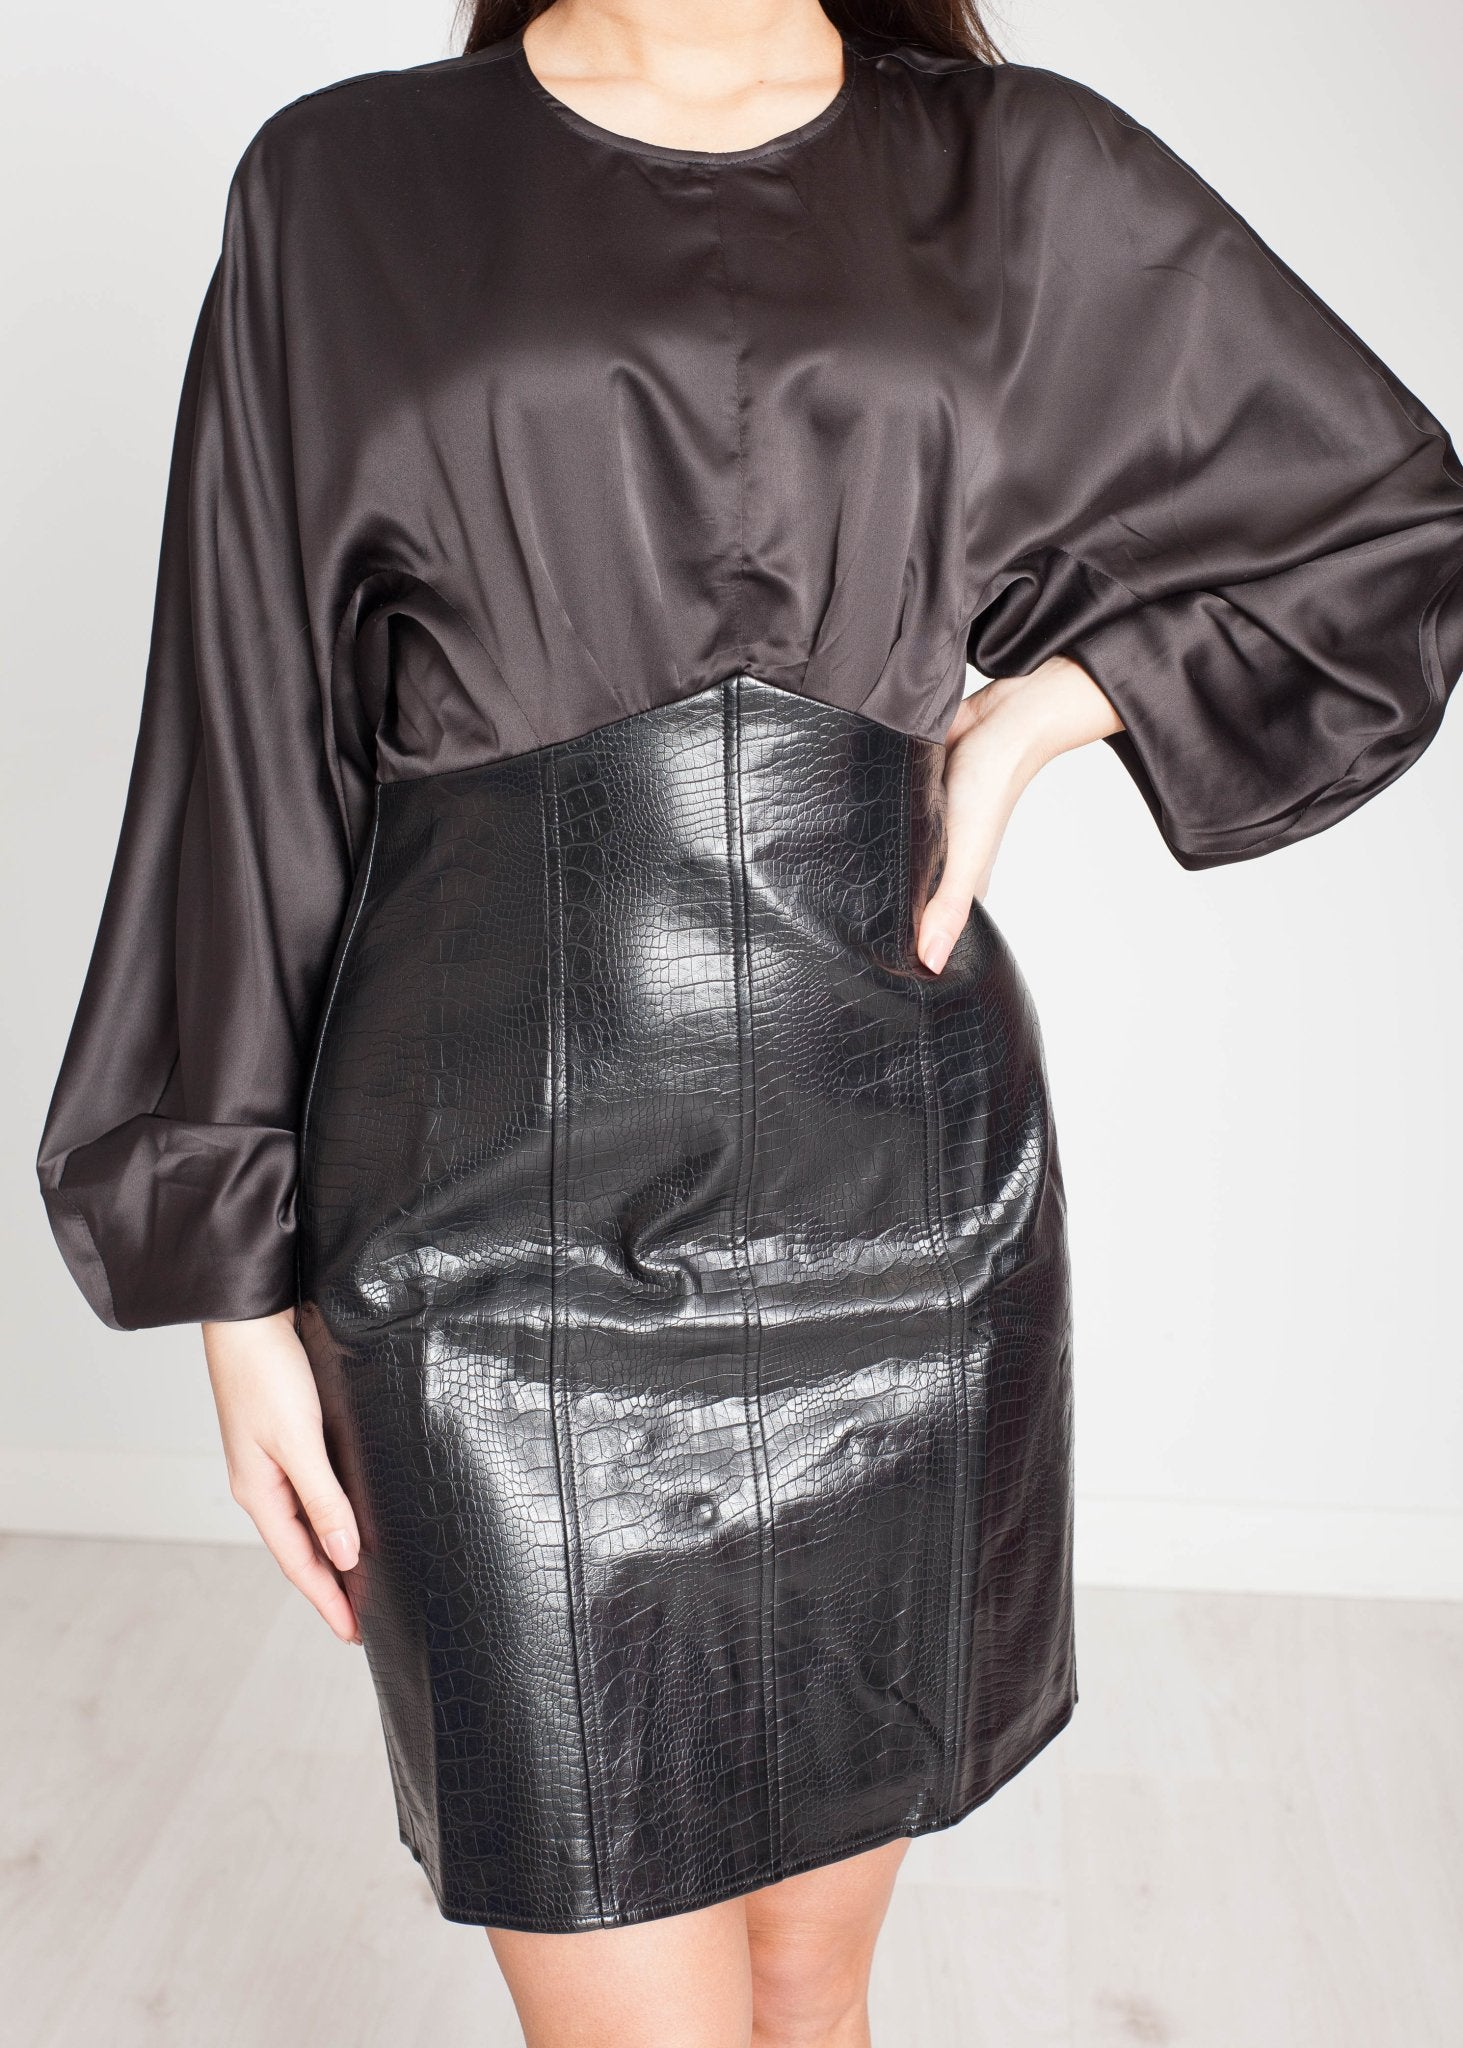 Jasmine Leather & Satin Dress In Black - The Walk in Wardrobe